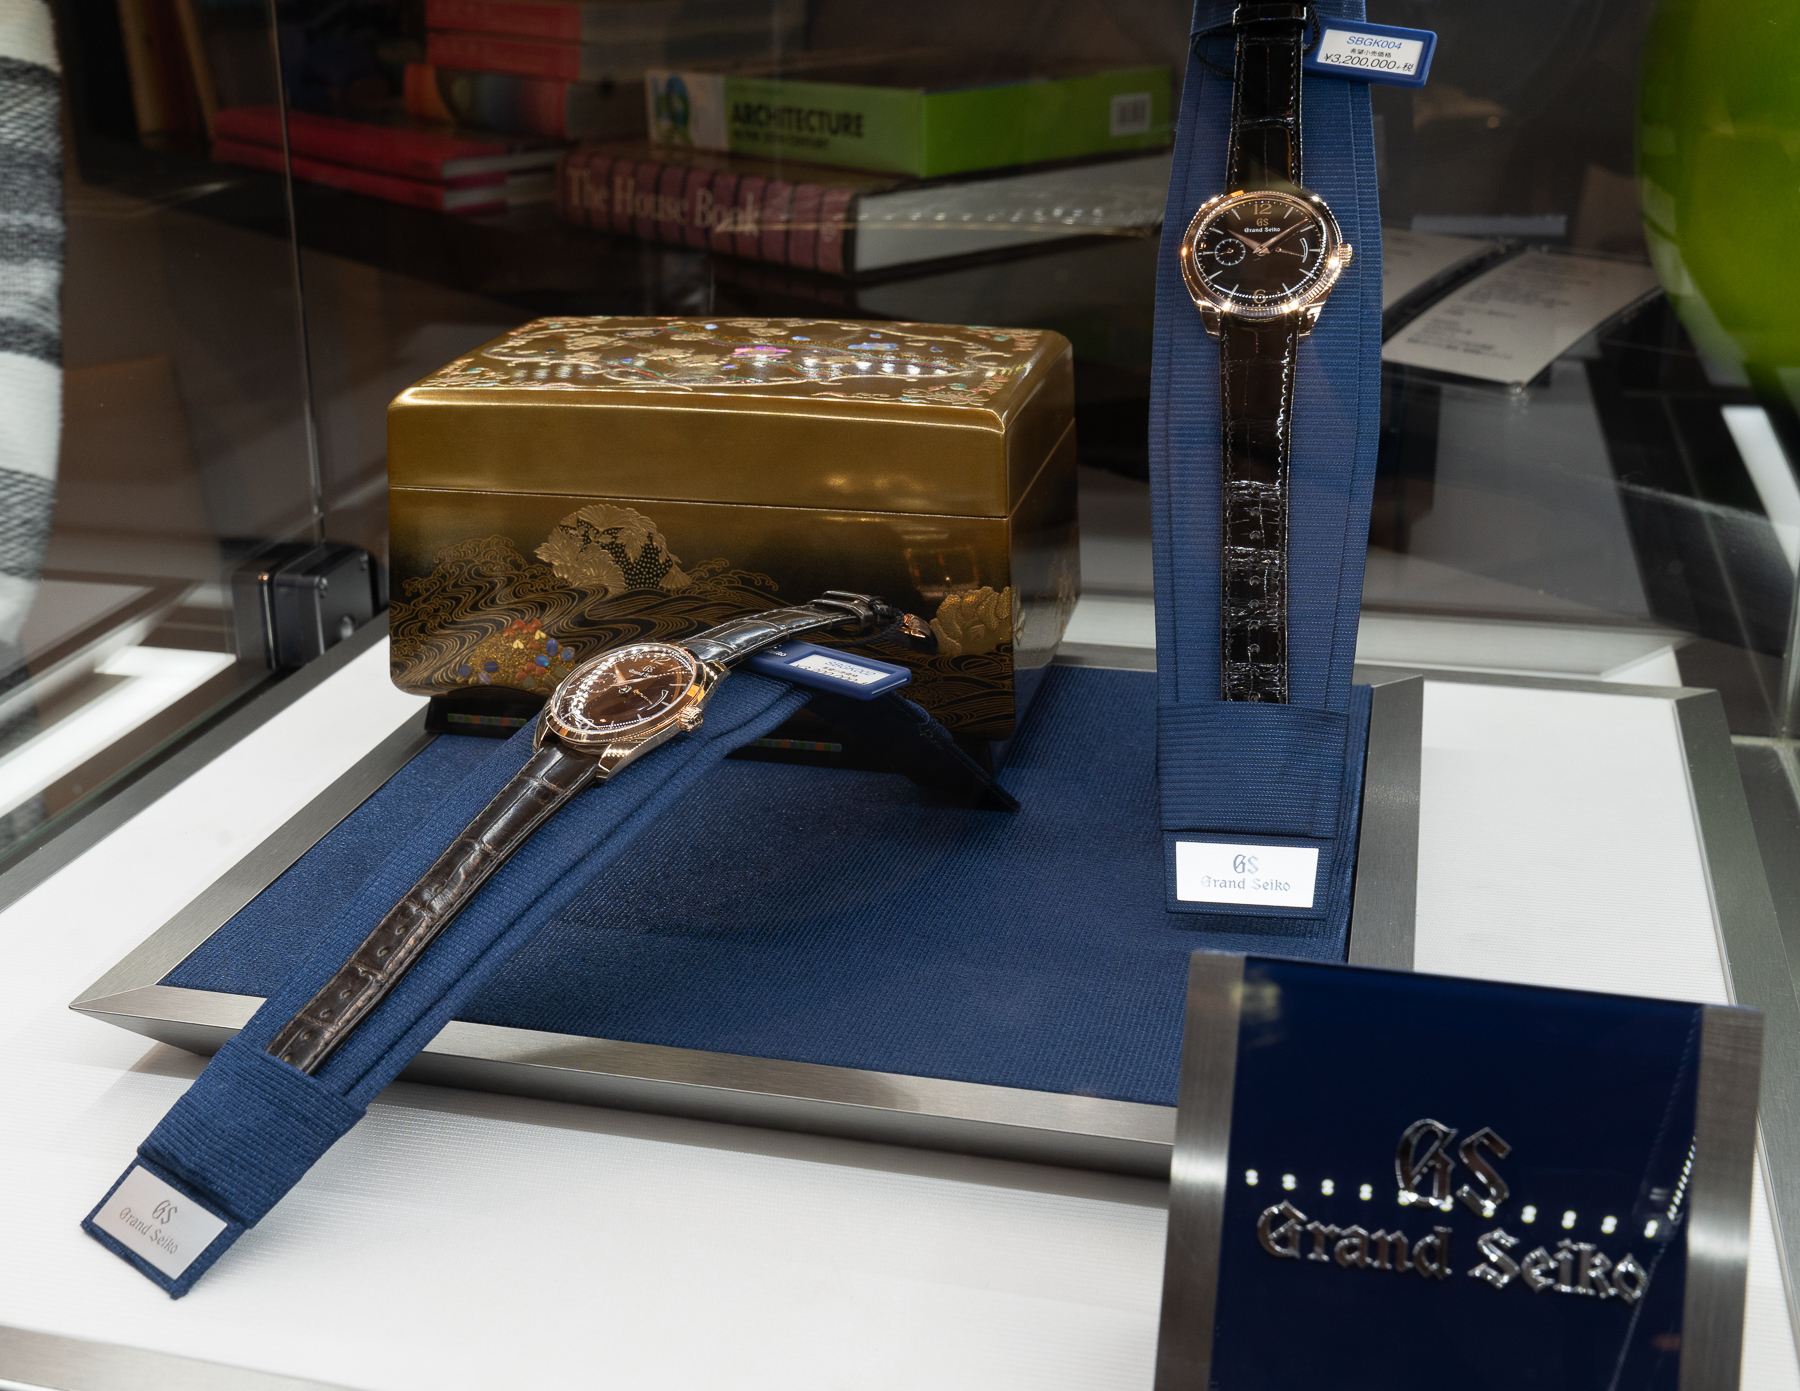 Jewelry Box and final GS models